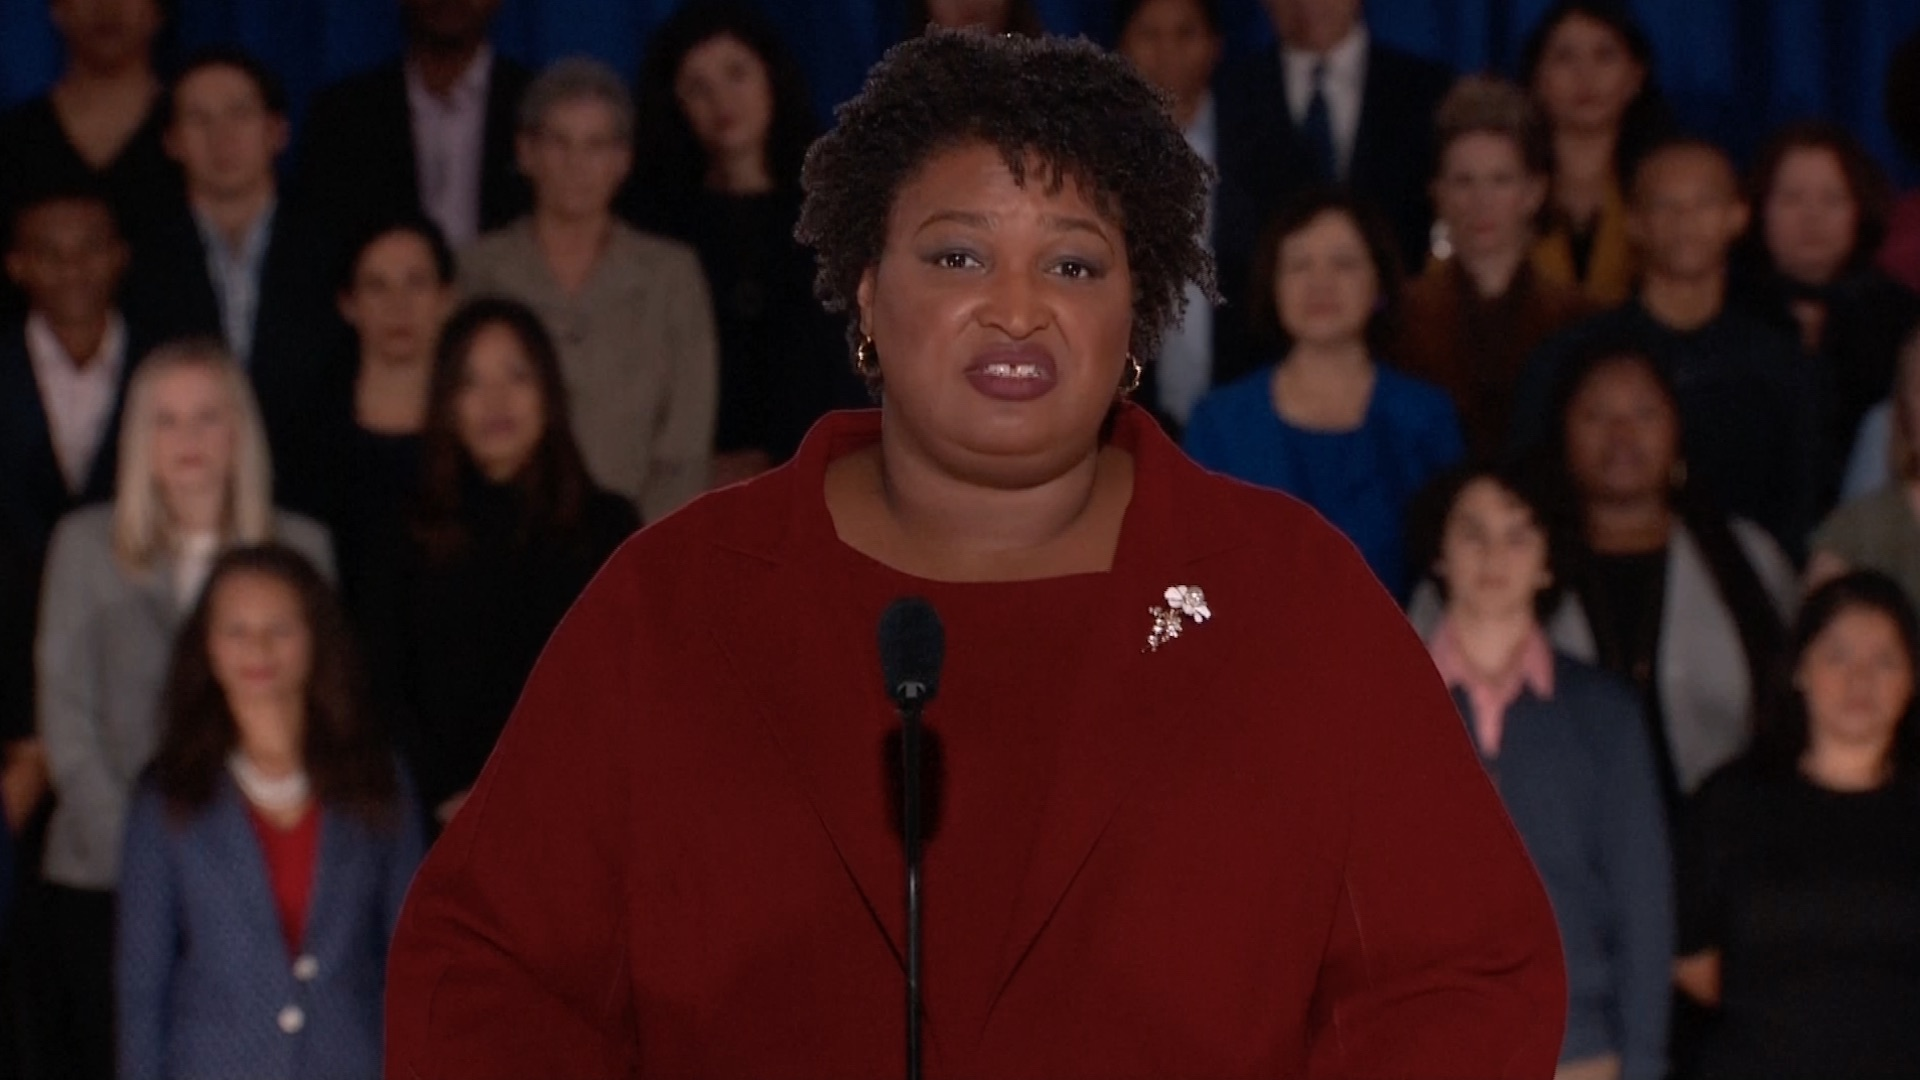 Abrams rebukes Trump for his immigration stance in official Democratic response